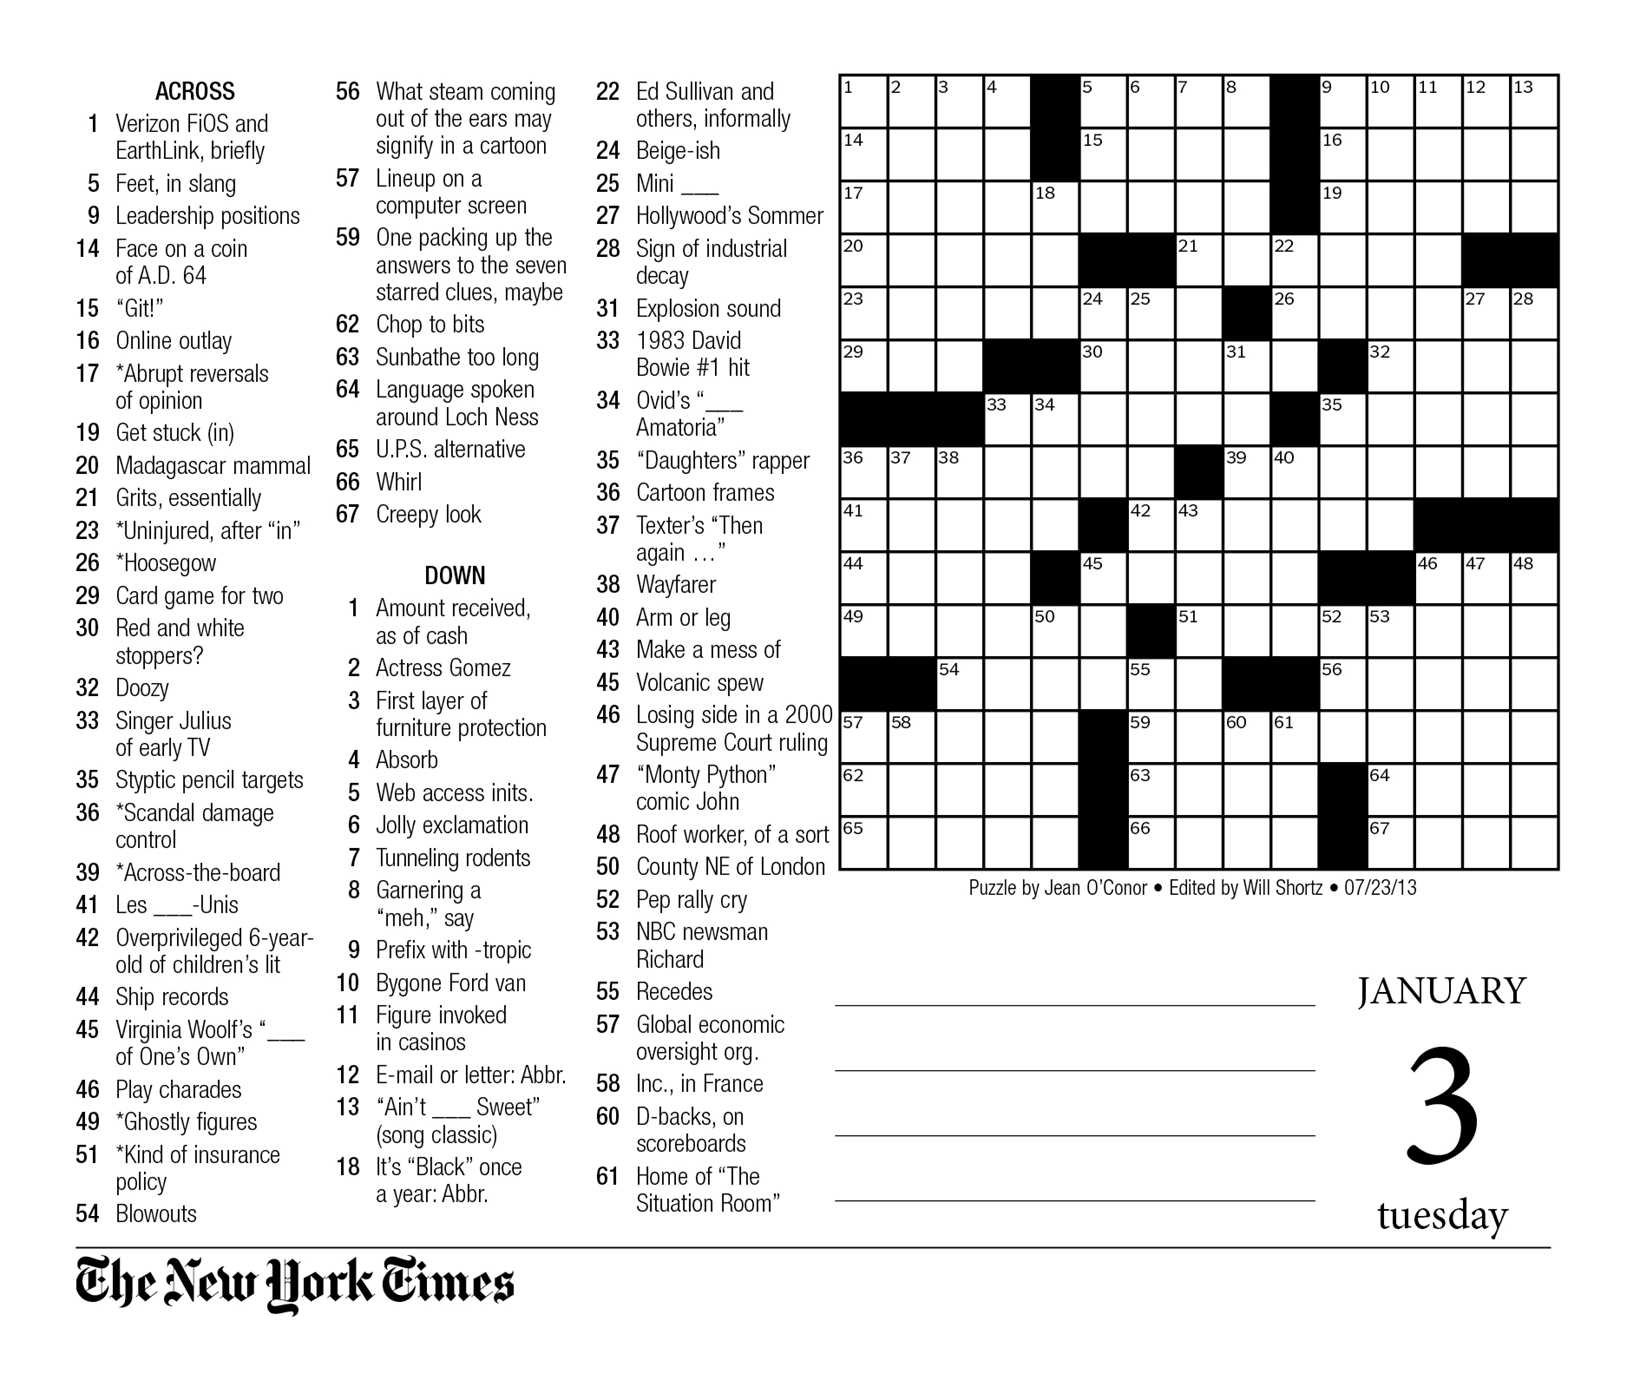 Play Free Crossword Puzzles From The Washington Post - The - Free - Free Printable Crossword Puzzles Washington Post